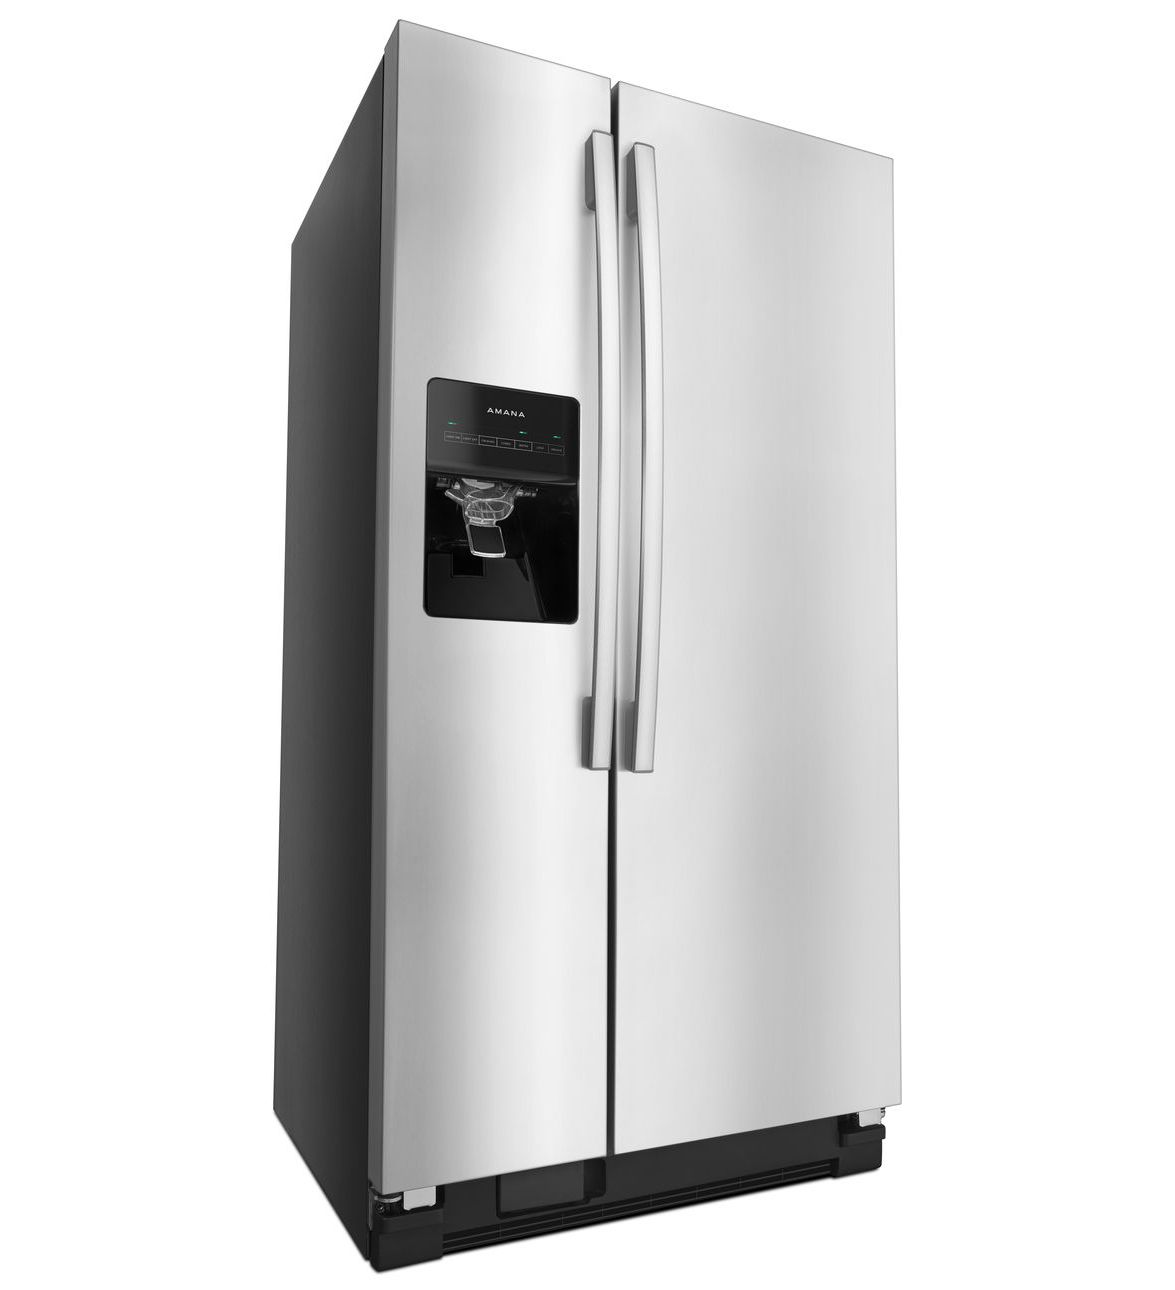 Amana ASI2275SRS Side by Side Refrigerator